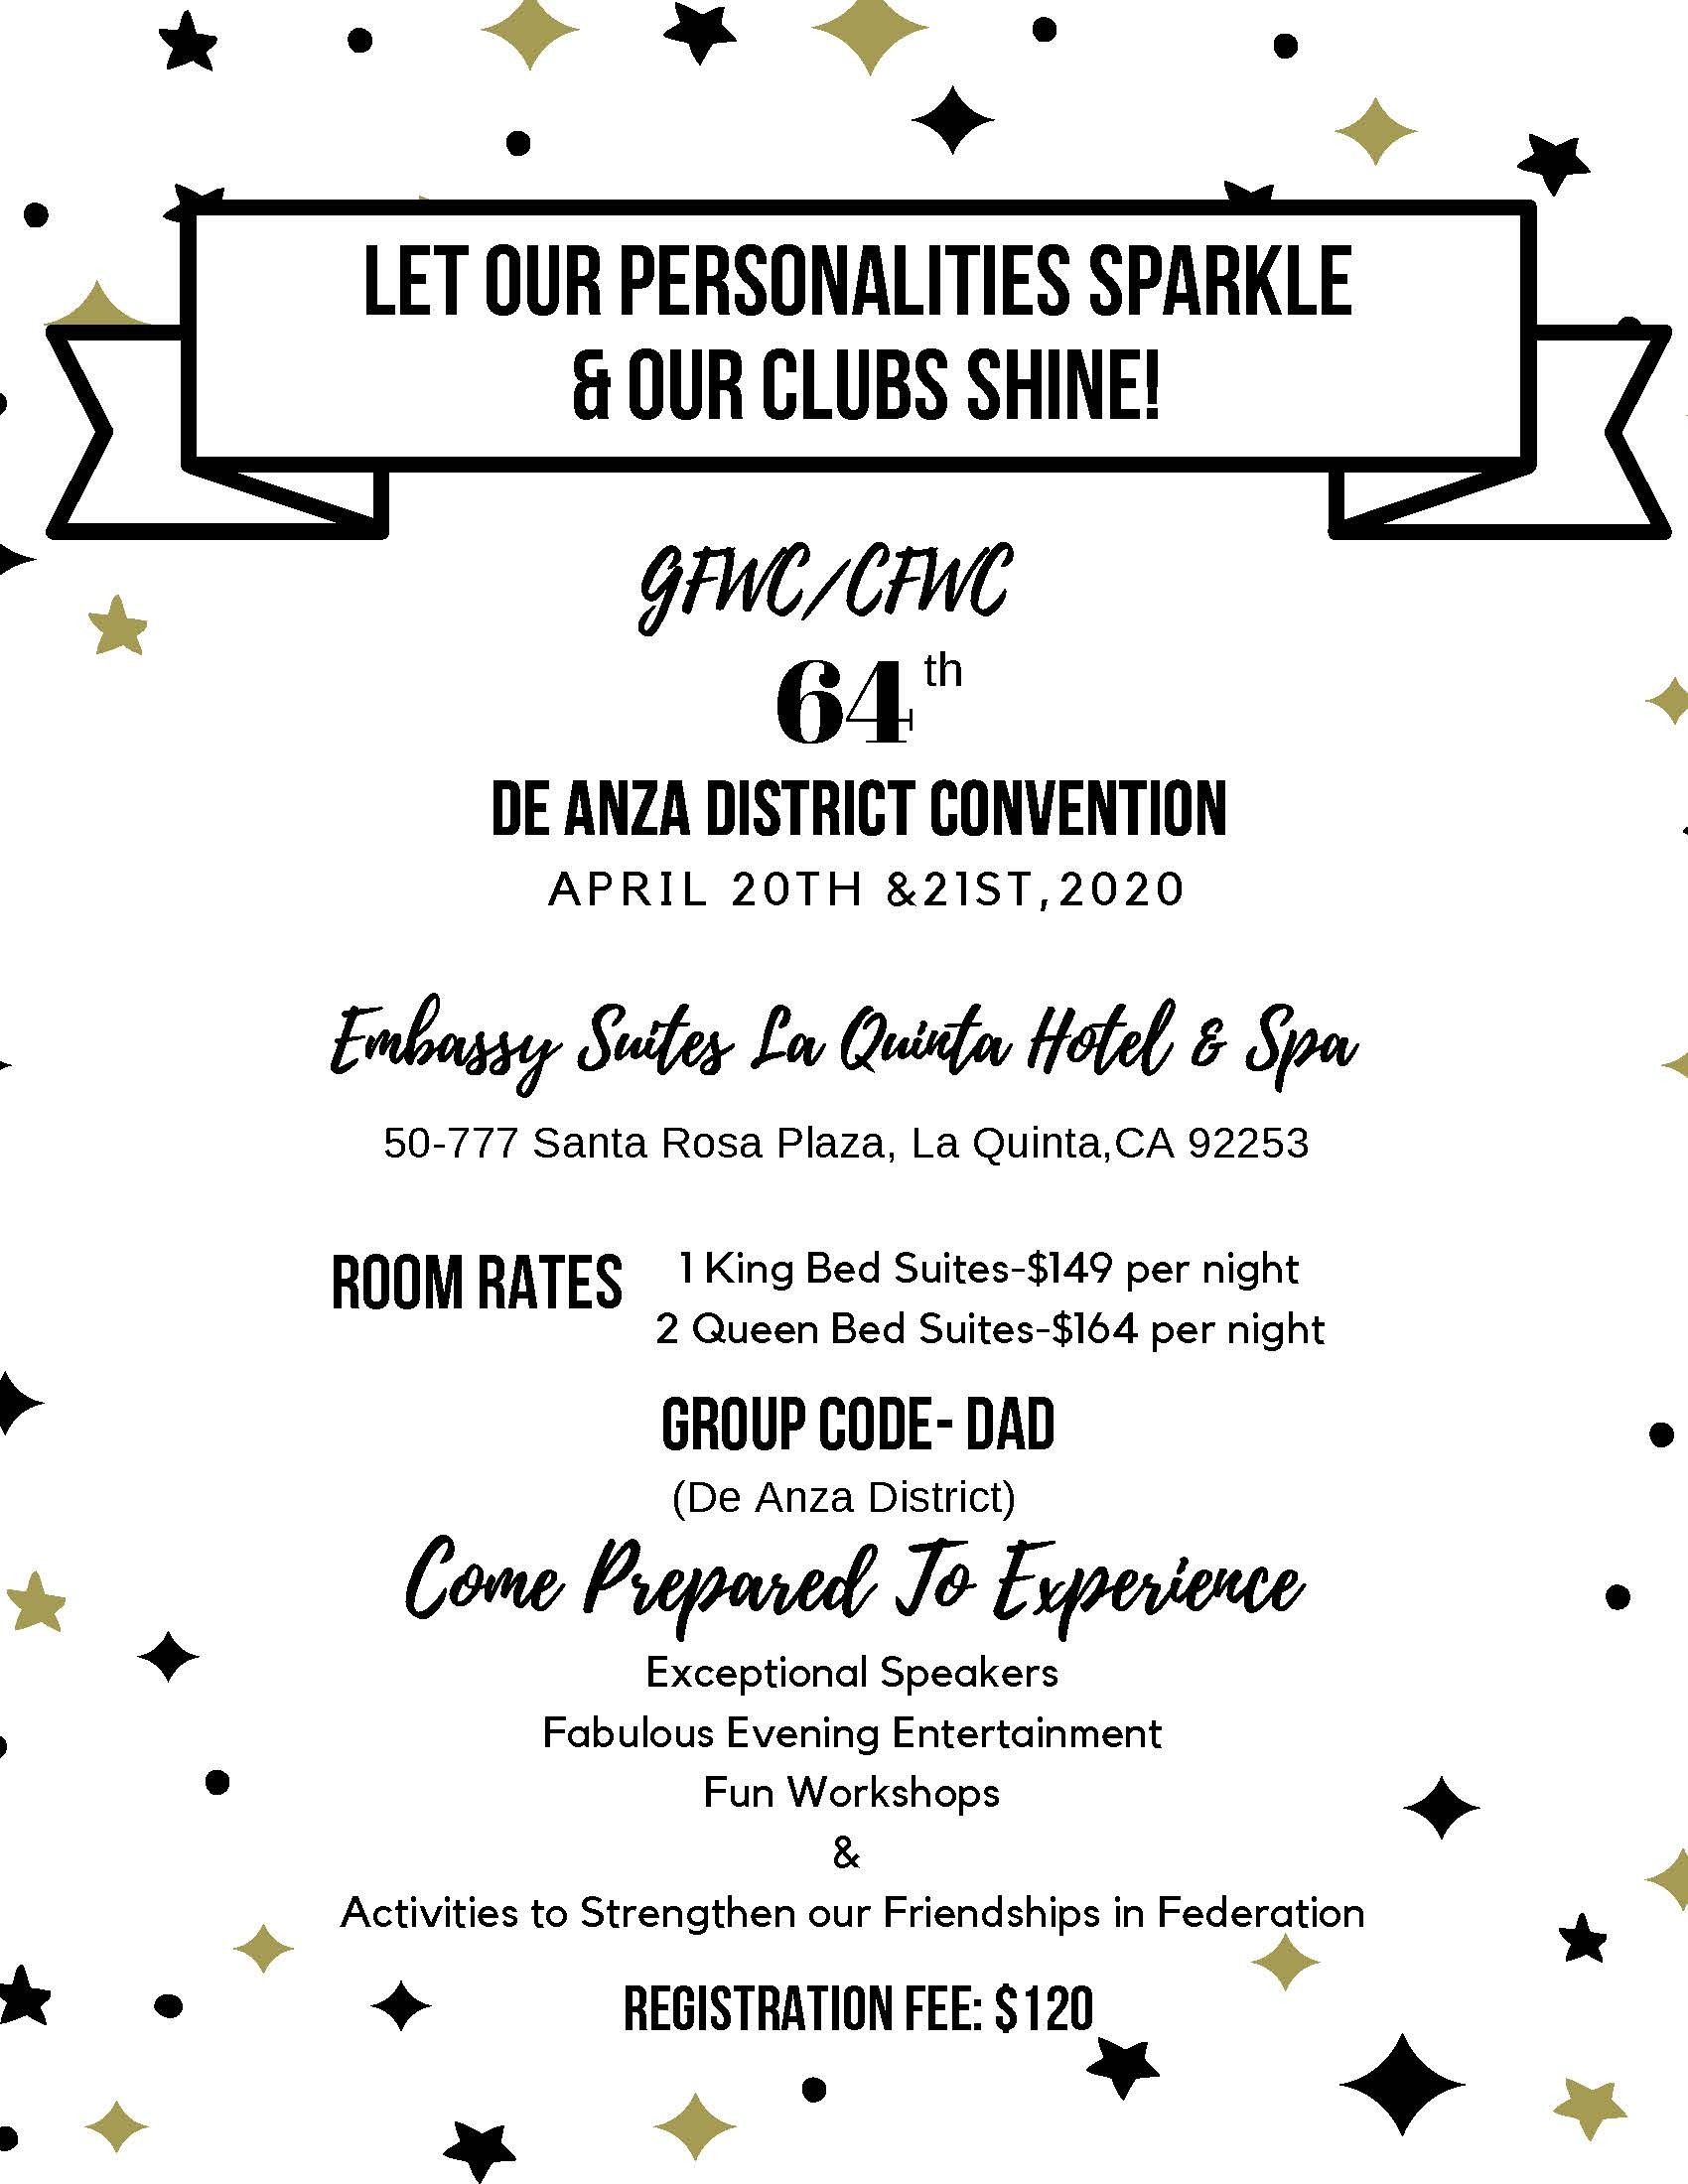 DeAnza District Convention Flyer_Page_1